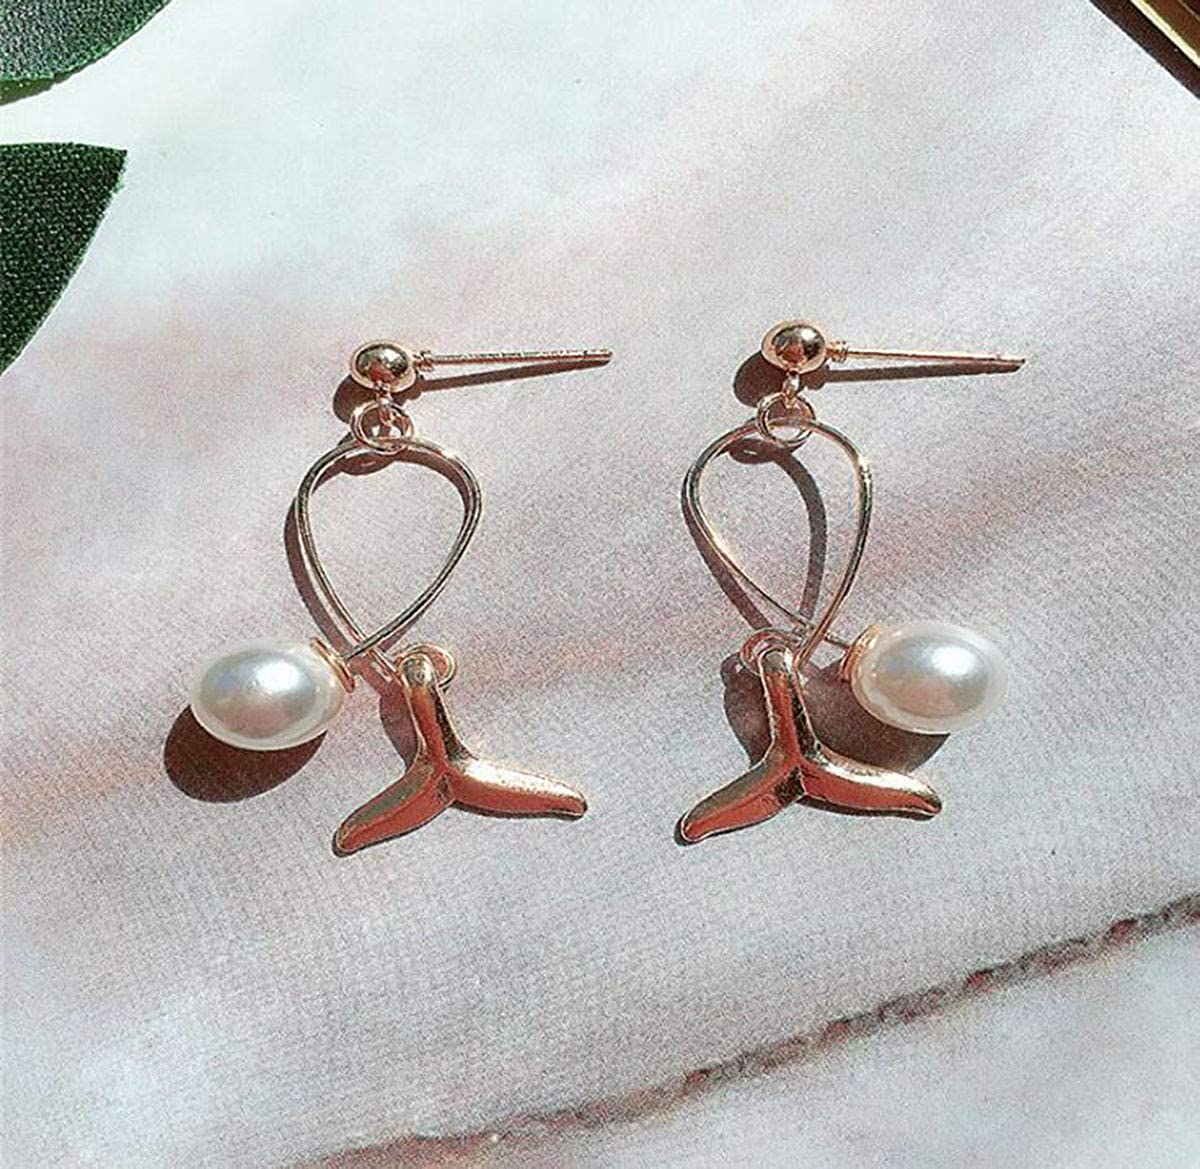 Libaraba Fish Tail with Simulated Pearl Stud Earrings with Heart Jewelry Box,Fish Earrings for Women